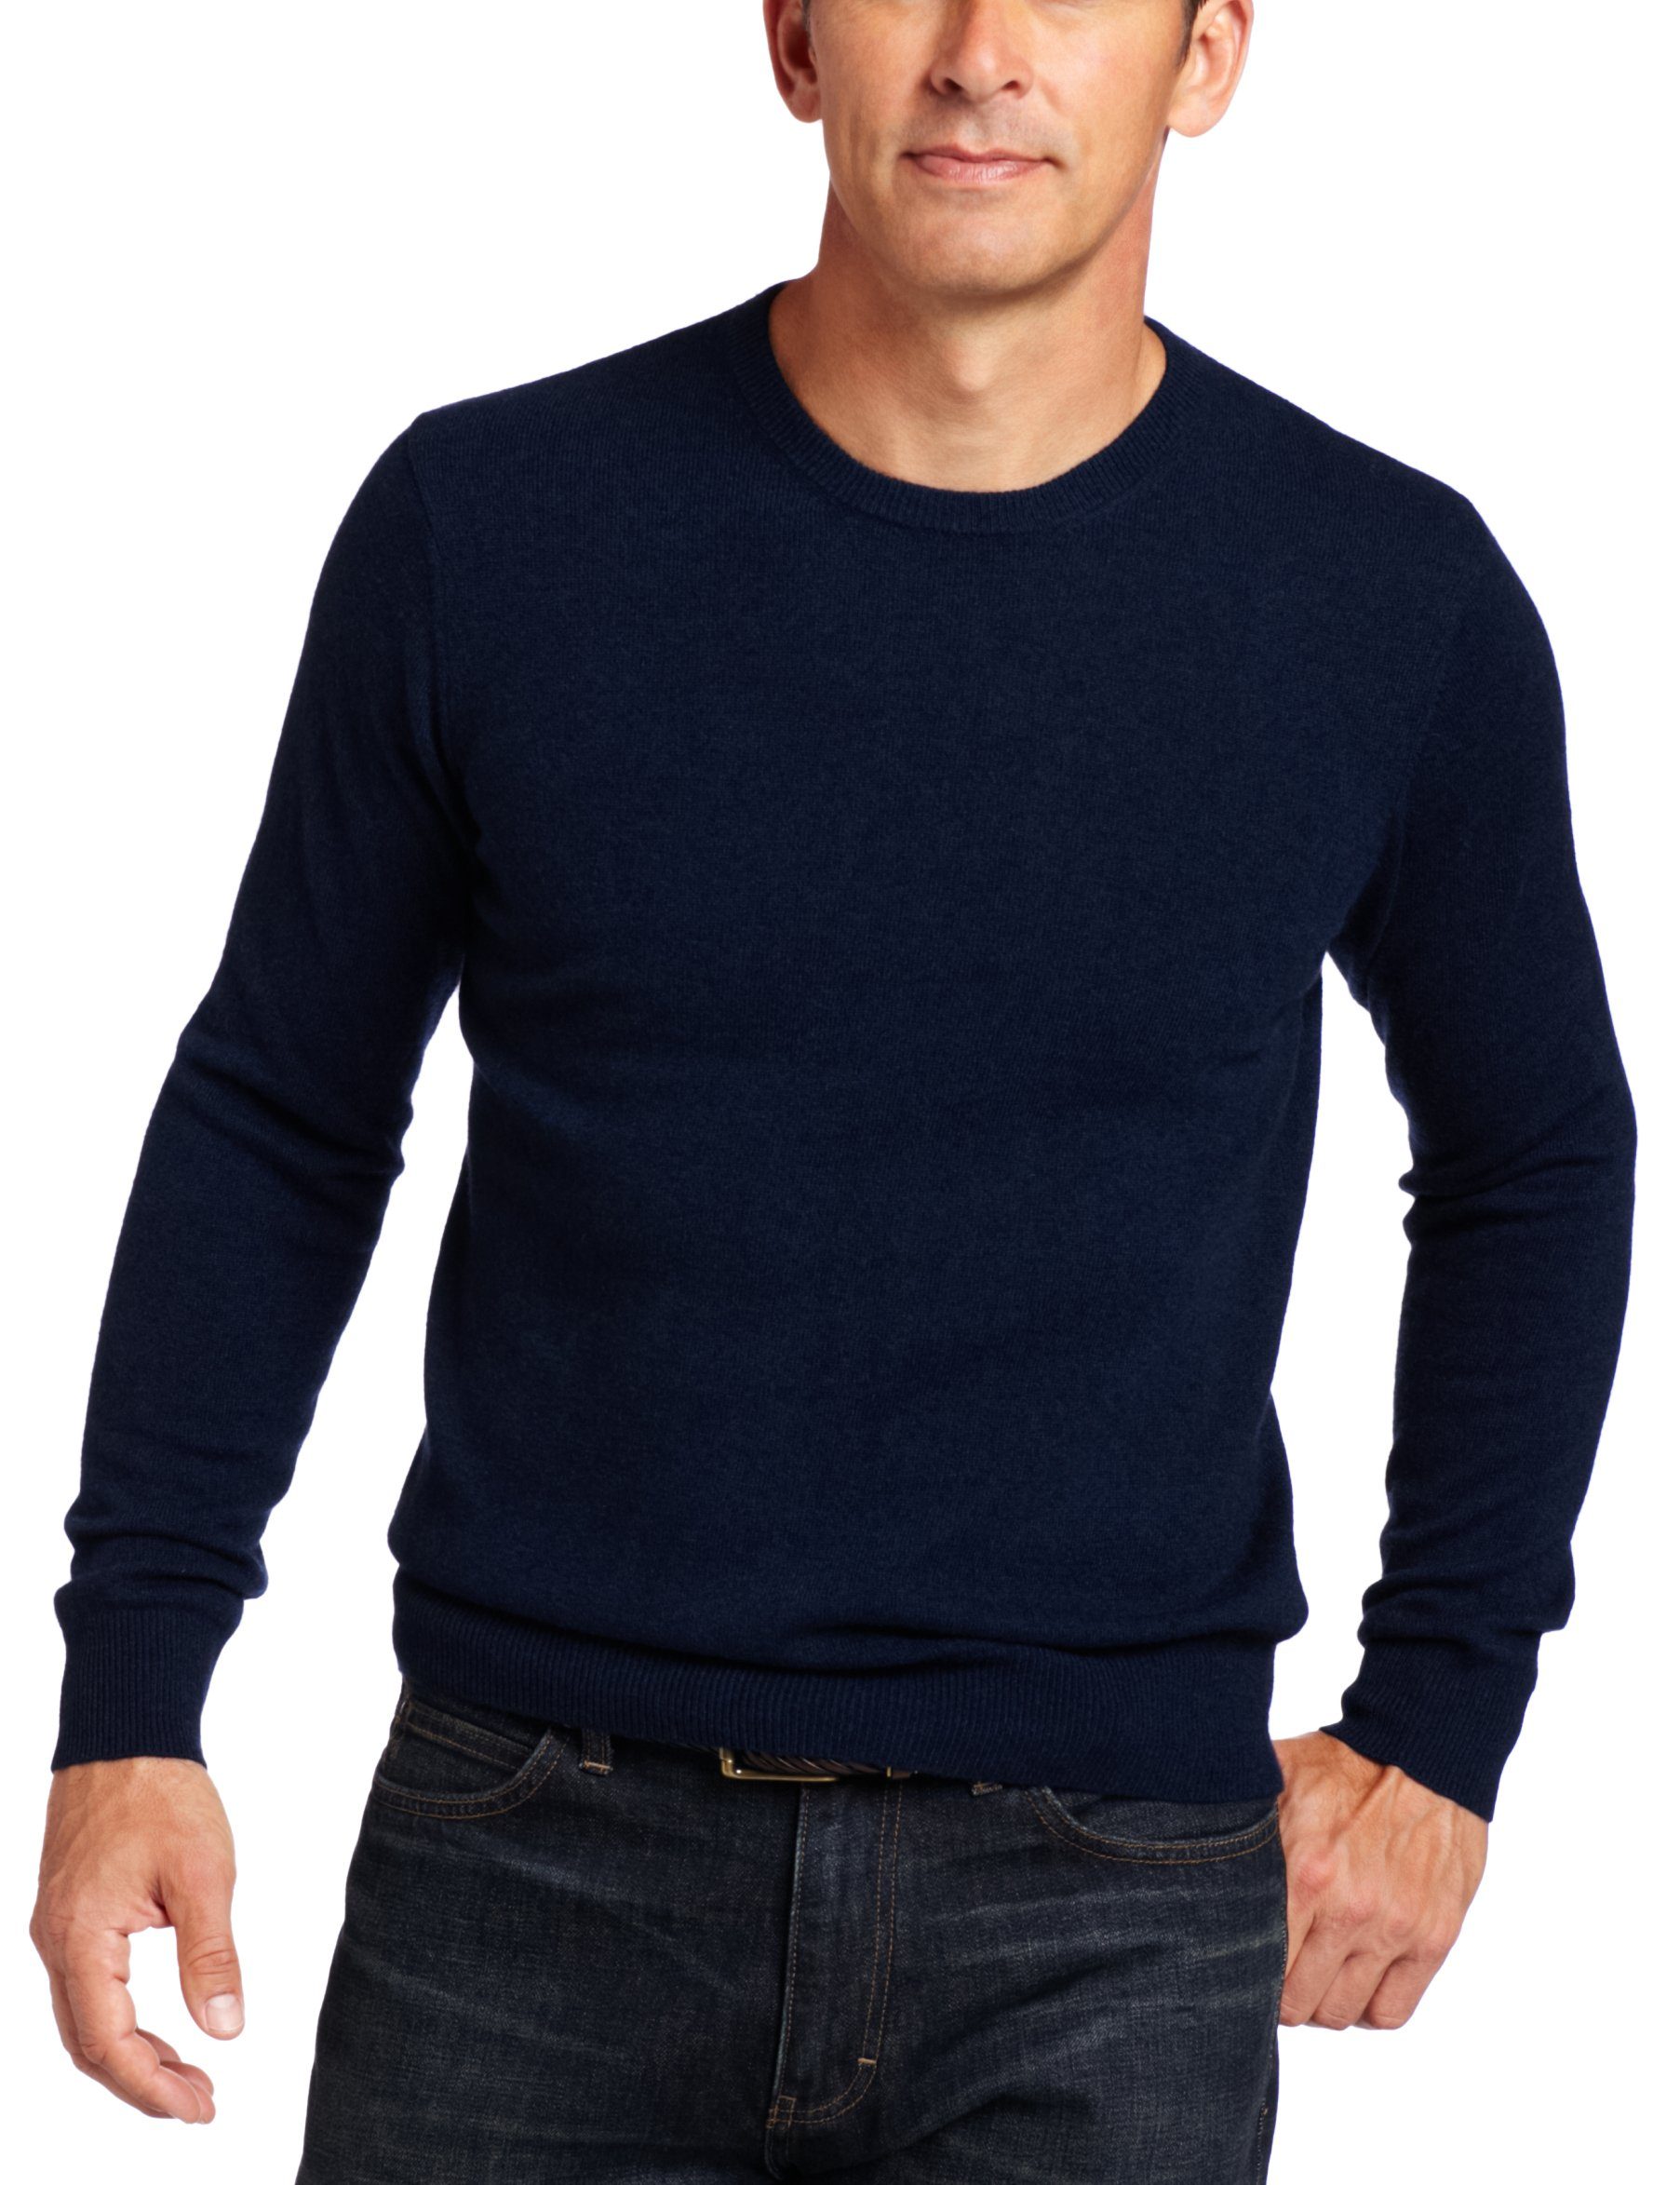 Williams Cashmere Men's 100% Cashmere  Long Sleeve Crew Neck Sweater, Navy, X-Large